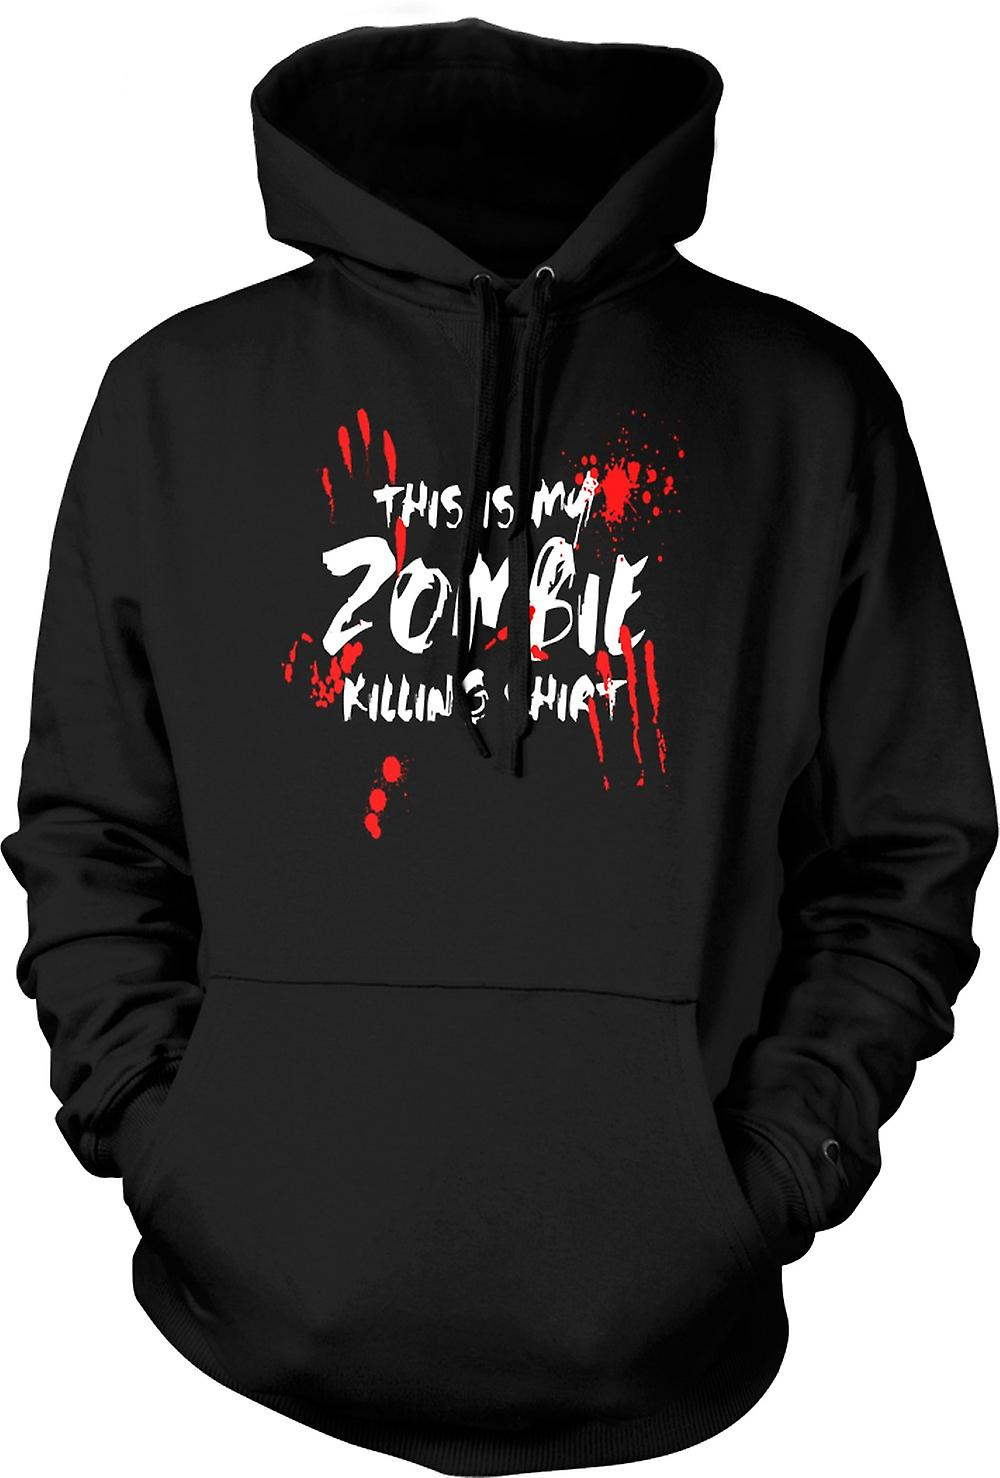 Kids Hoodie - This Is My Zombie Killing - Funny